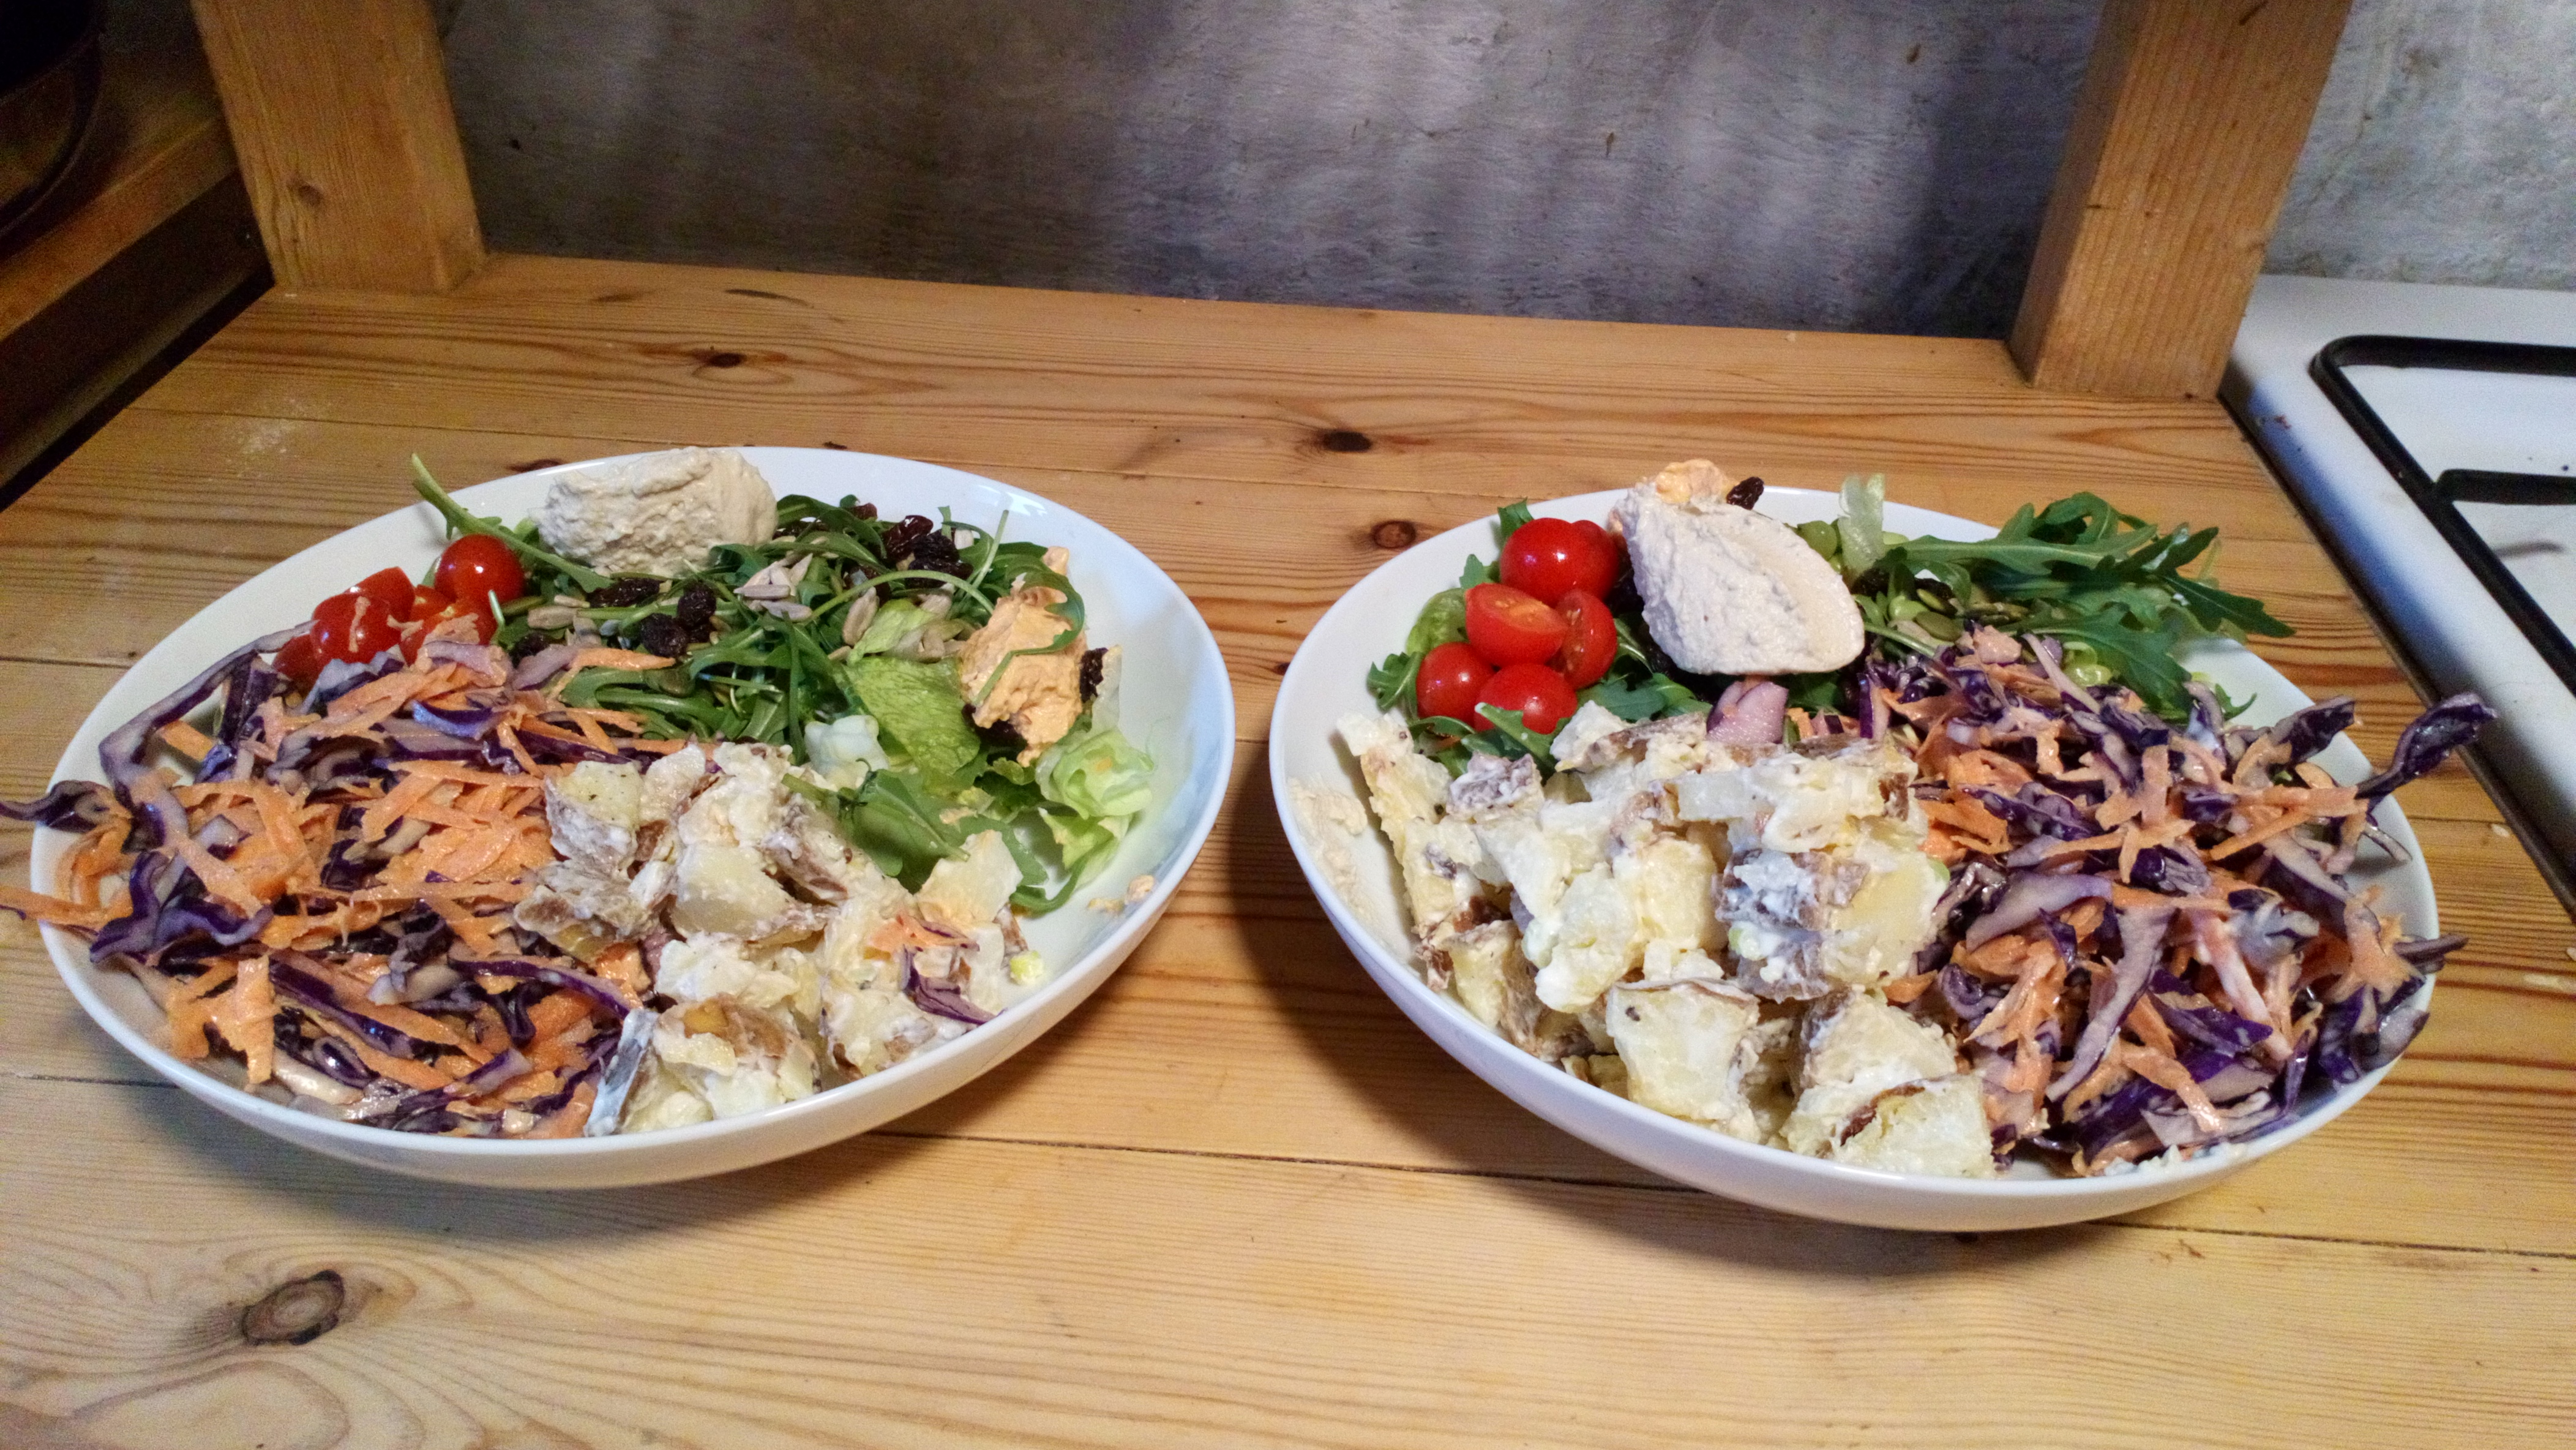 Life Begins At Fifty Healthy Life 5 High Carb Hannah And My Salad Bowl Wendy Steele